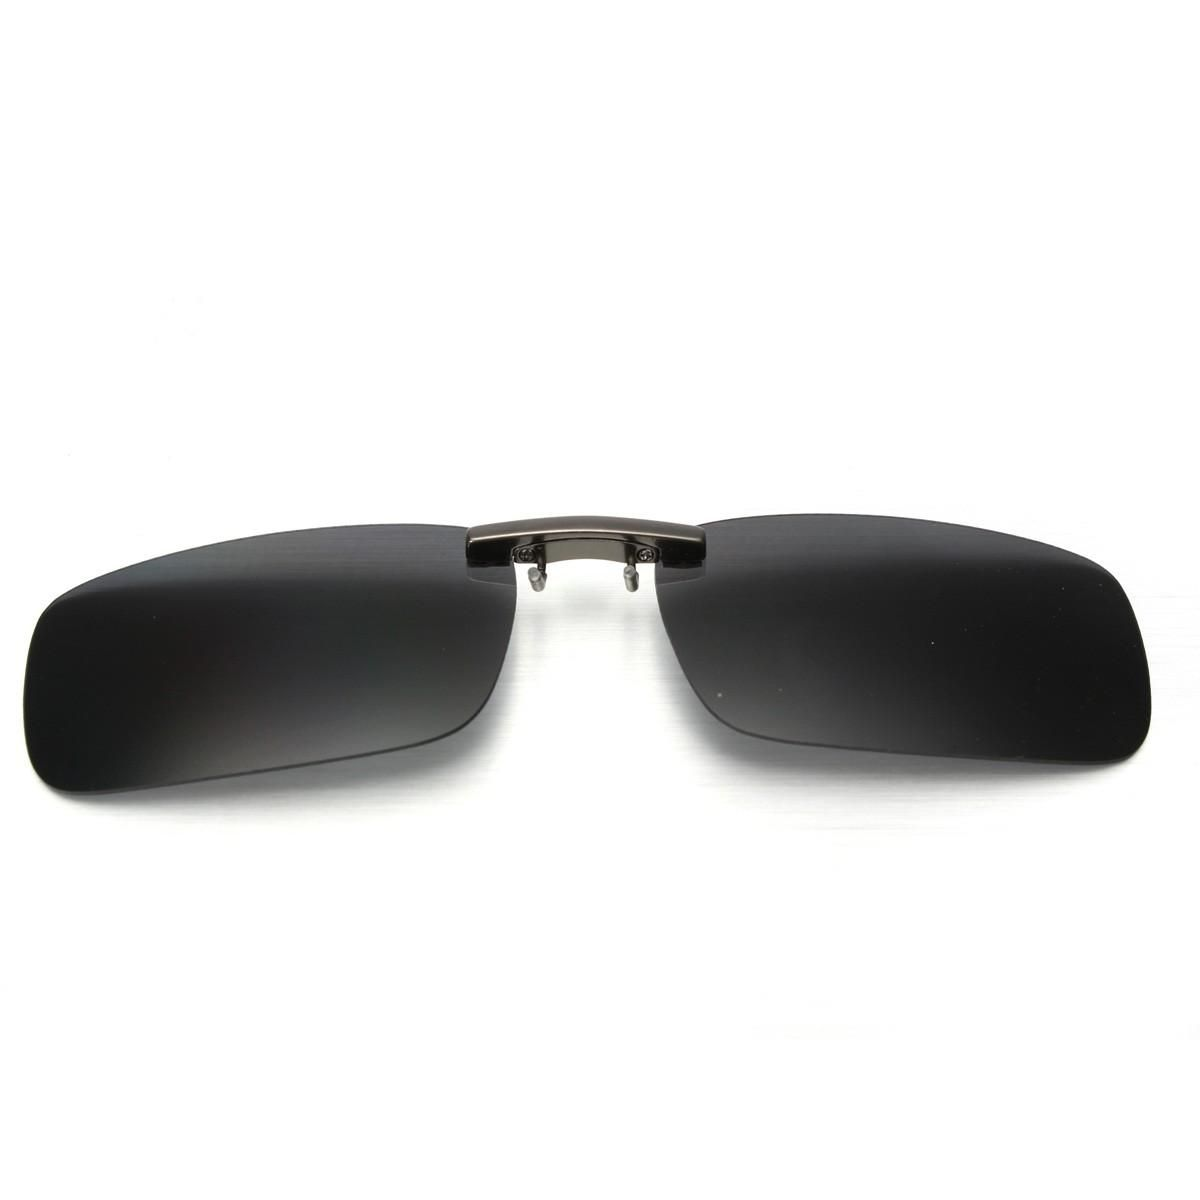 6437cef047 Fashion Polarized Day Night Vision Clip-on Flip-up Lens Driving Glasses  Sunglasses HOT